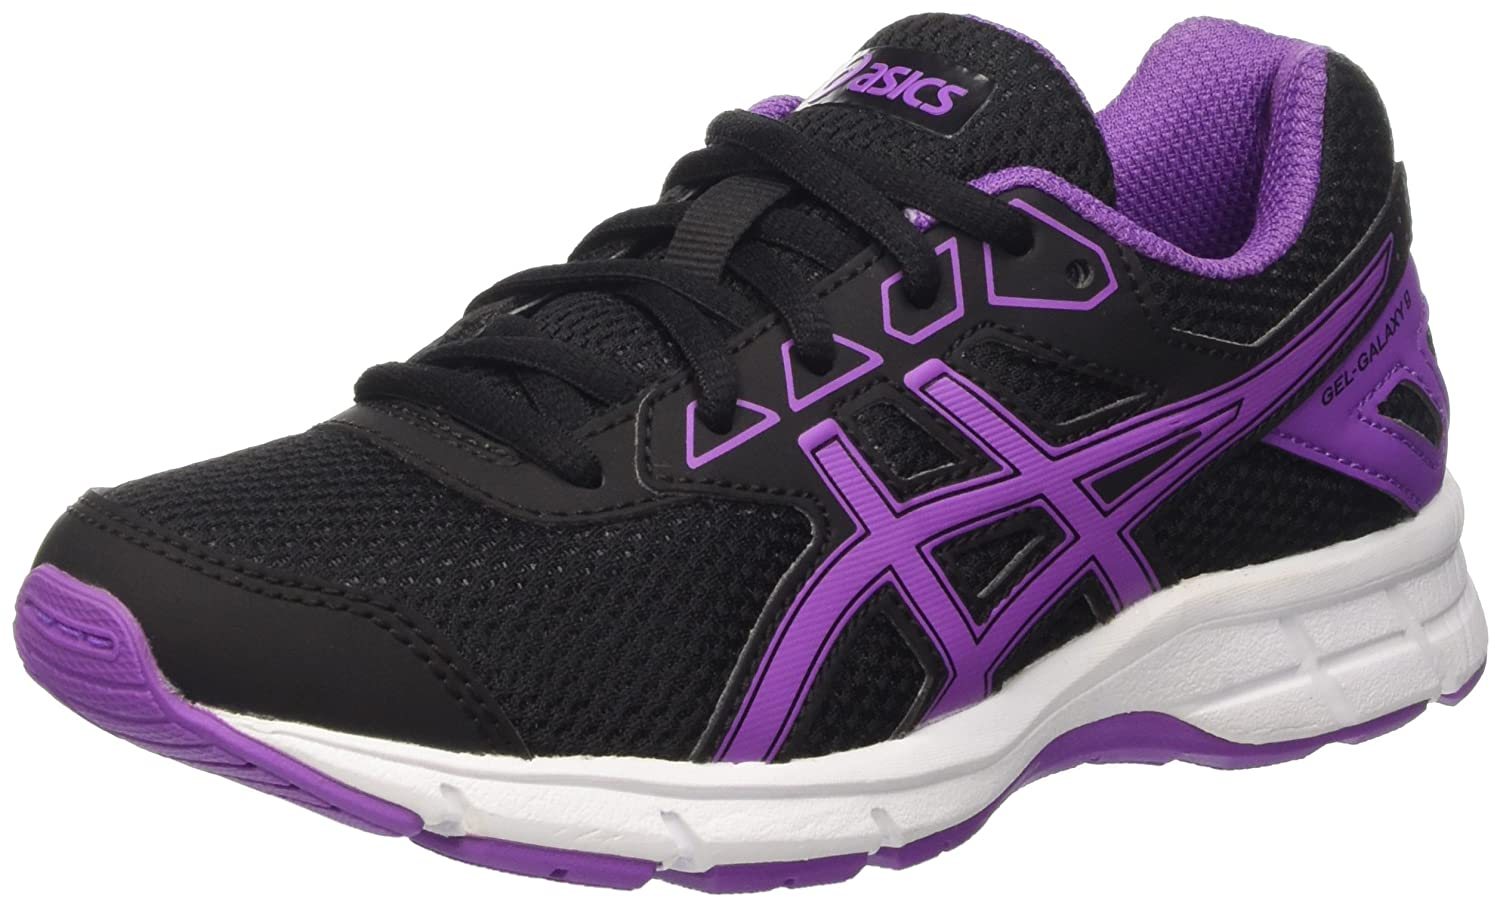 ASICS Unisex Kids' Gel-Galaxy 9 Gs Low-Top Sneakers